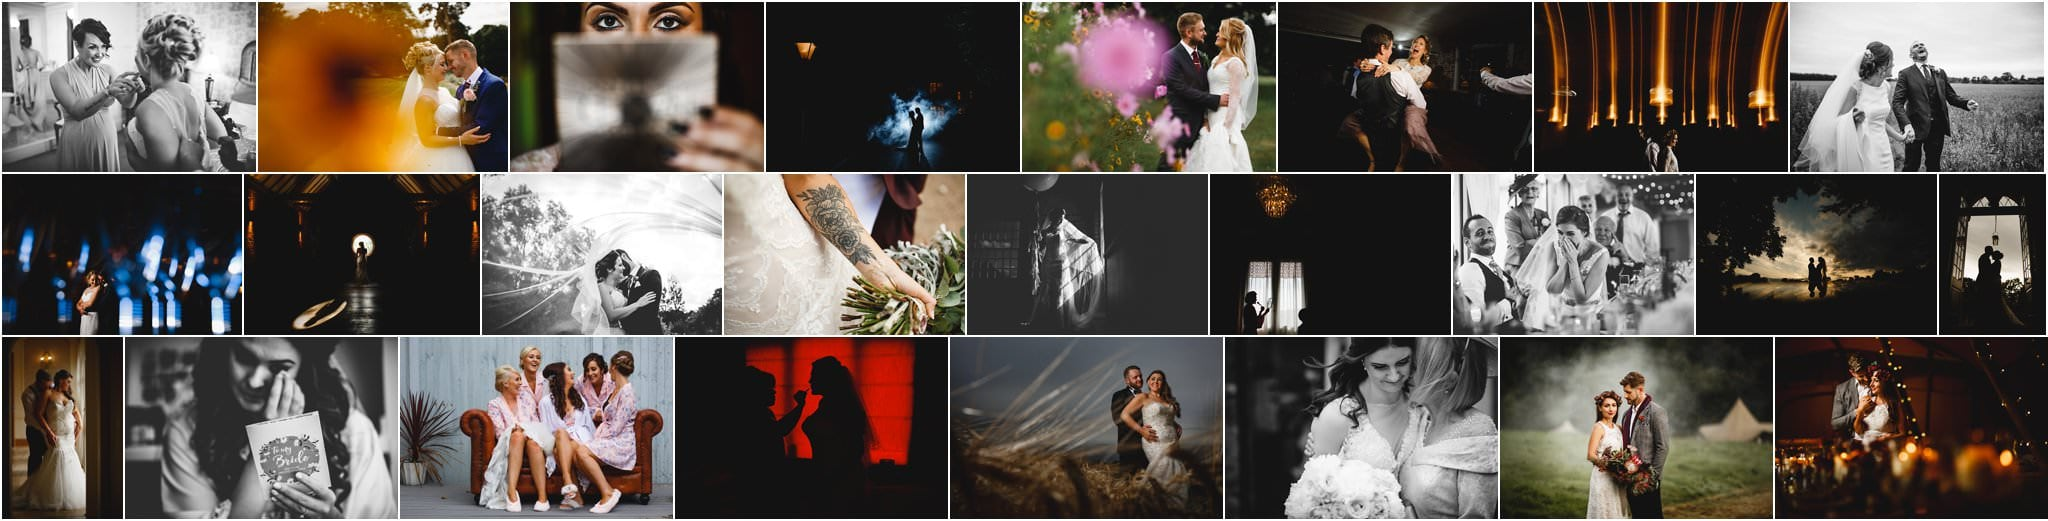 Best wedding photos of 2017 in Derbyshire by HBA Photography